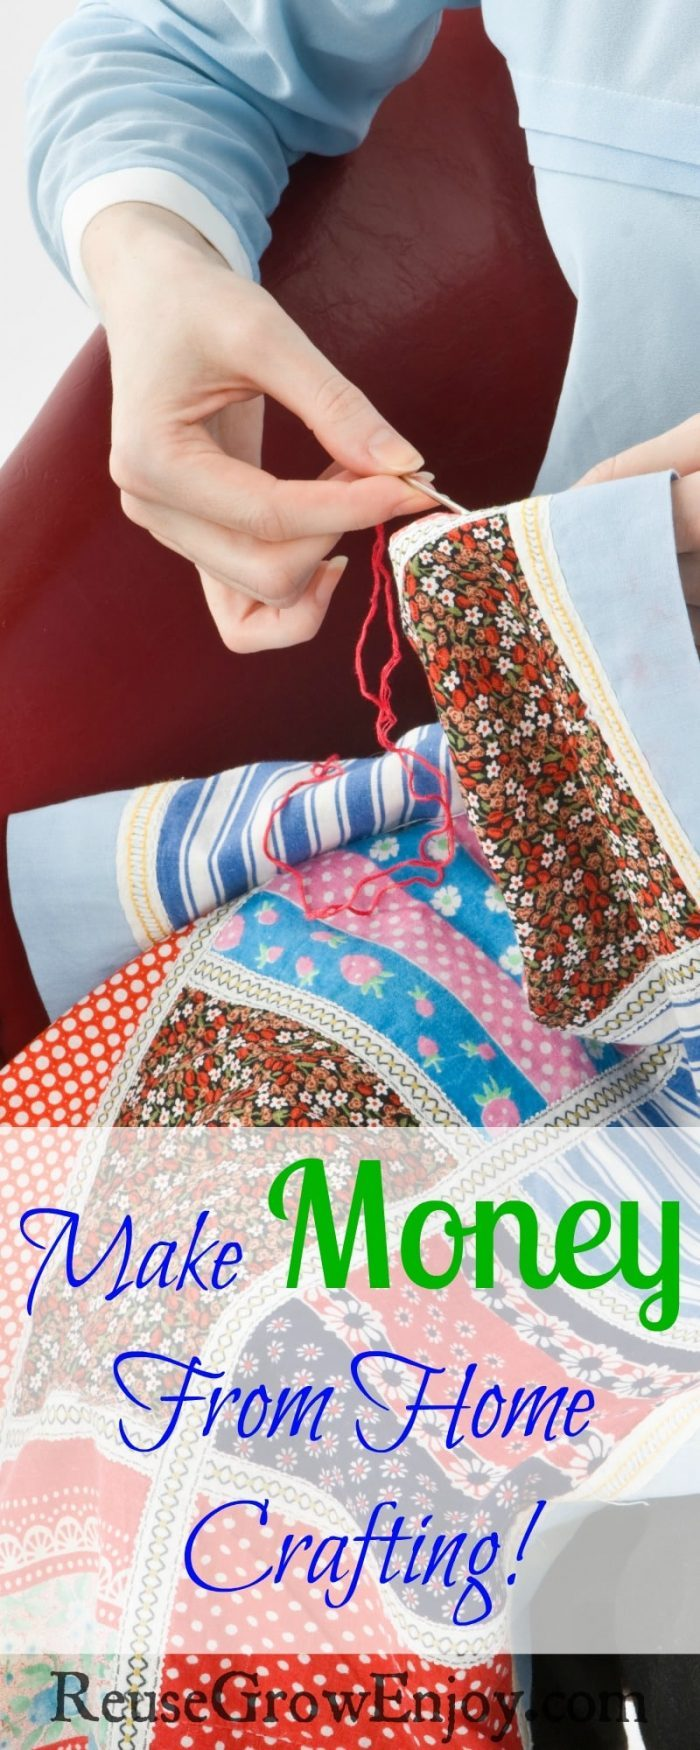 Hand stitching a quilt with a text overlay that says Make Money From Home Crafting